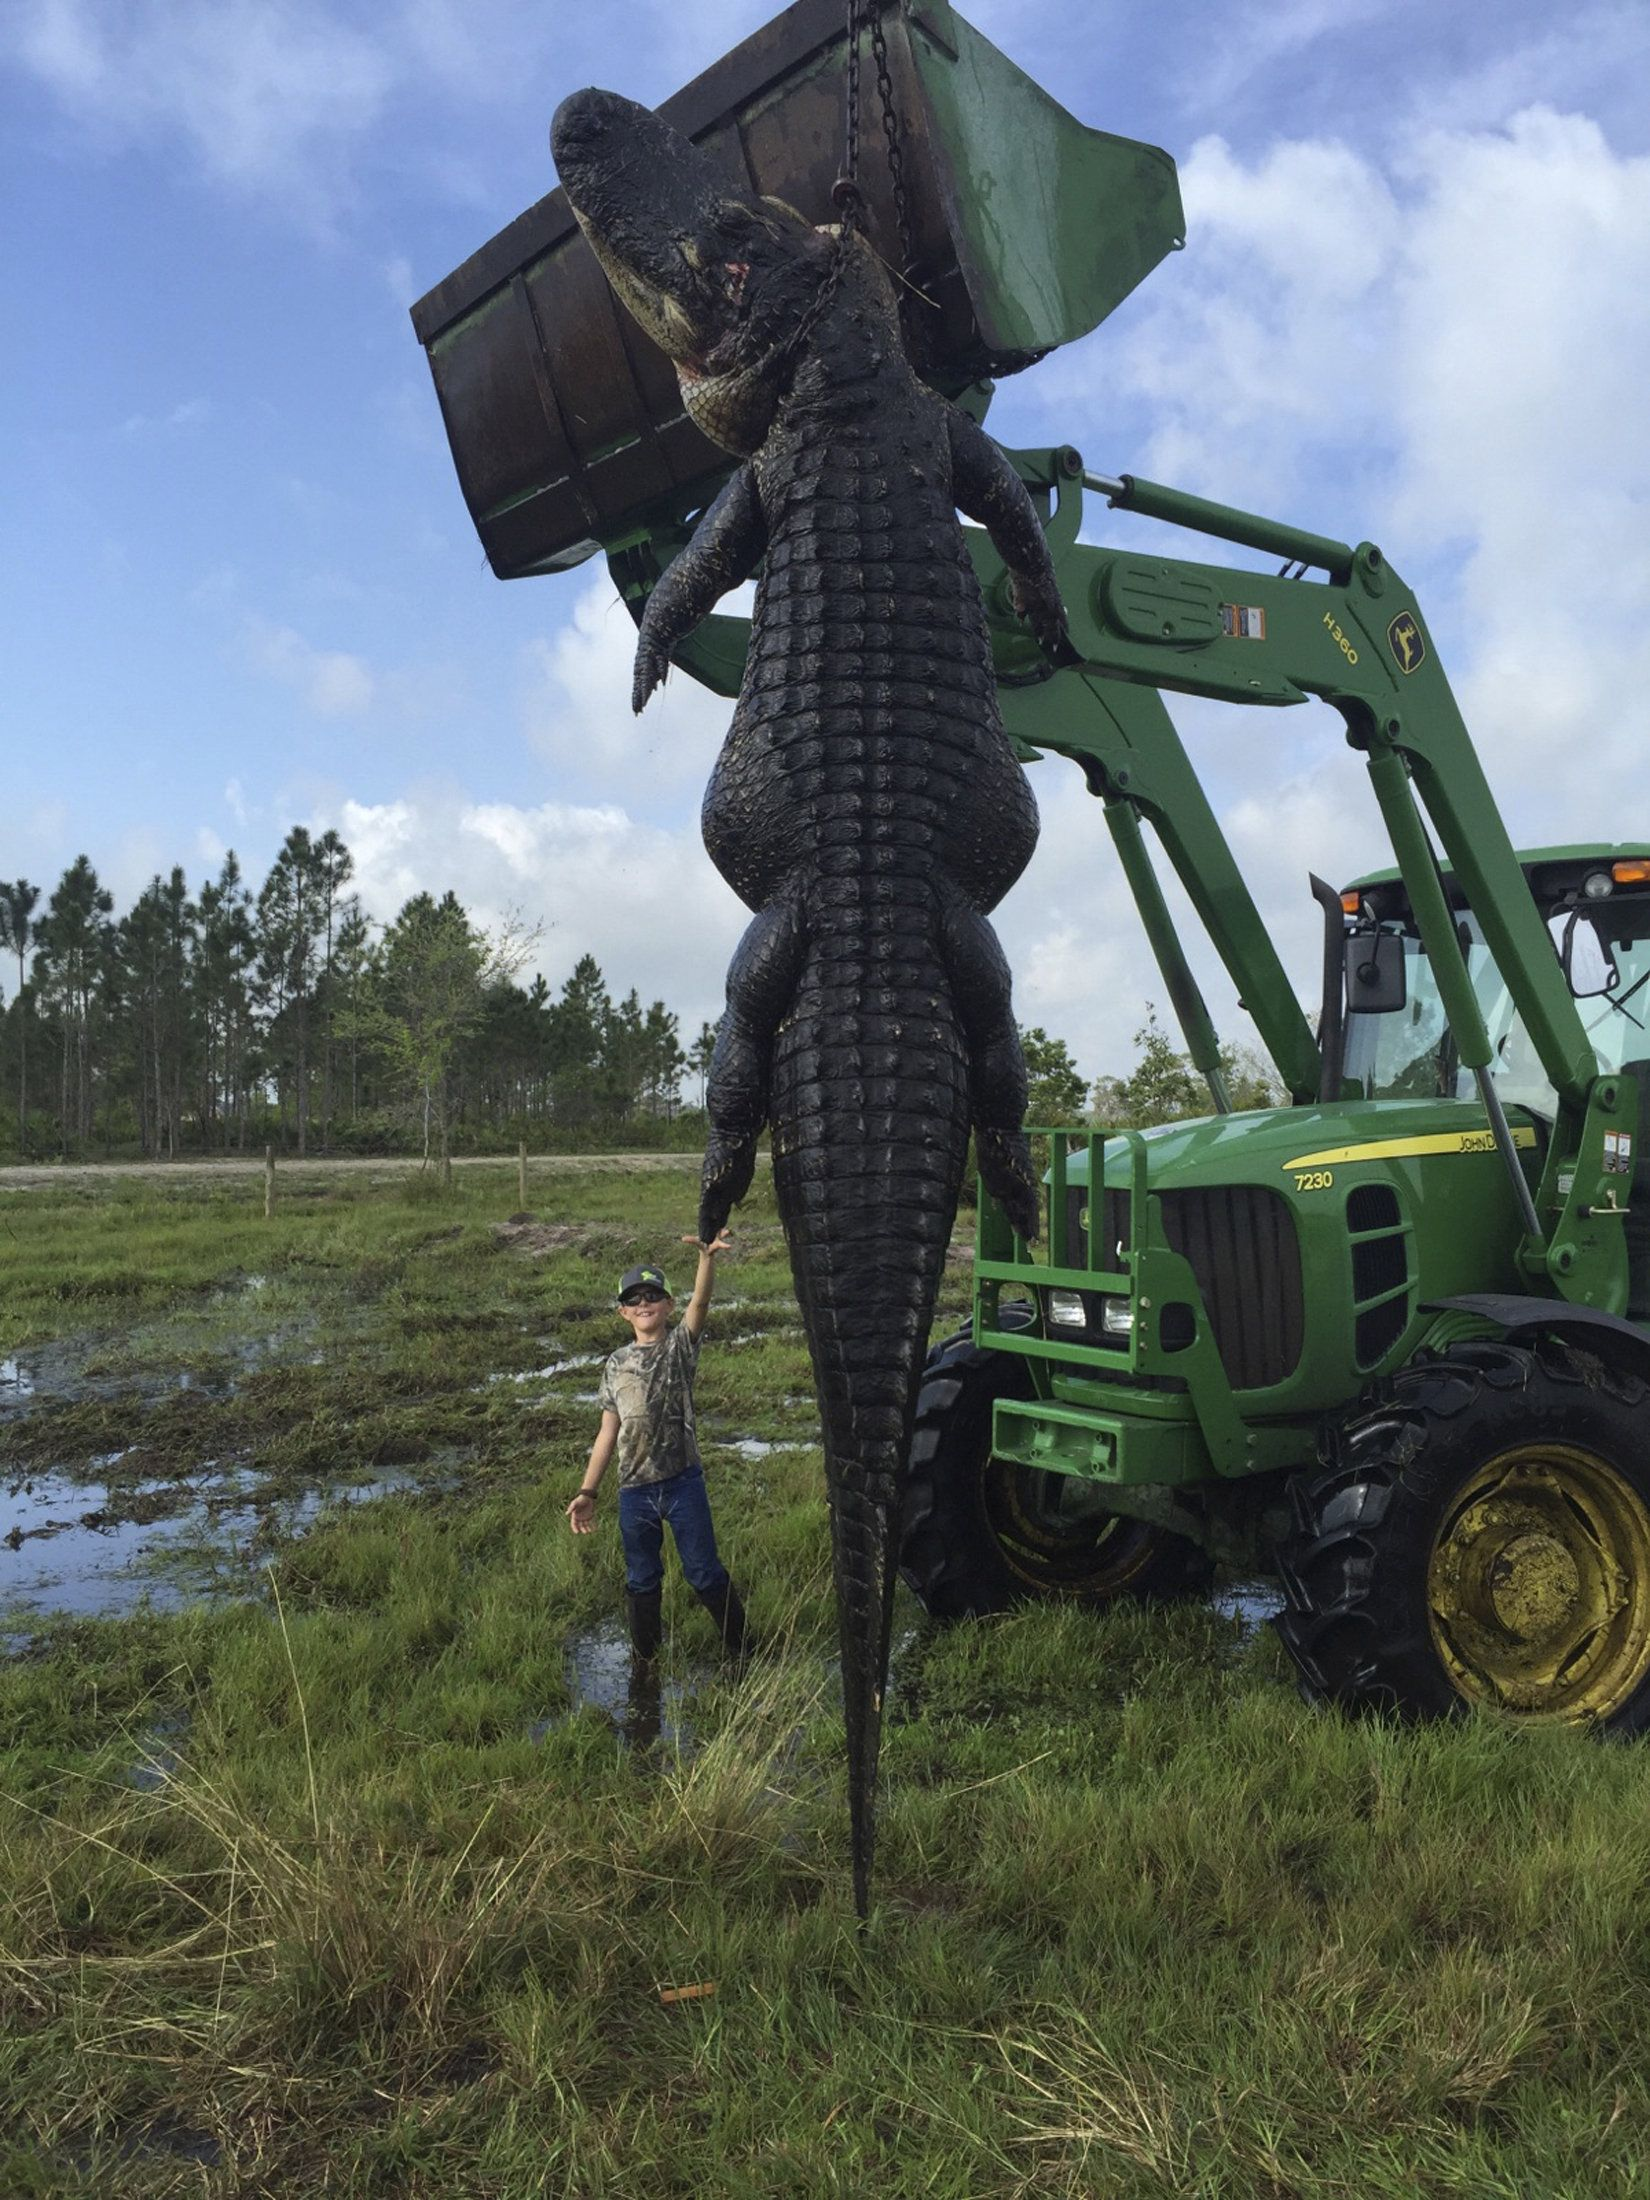 800 pound 15 foot long alligator caught on florida farm